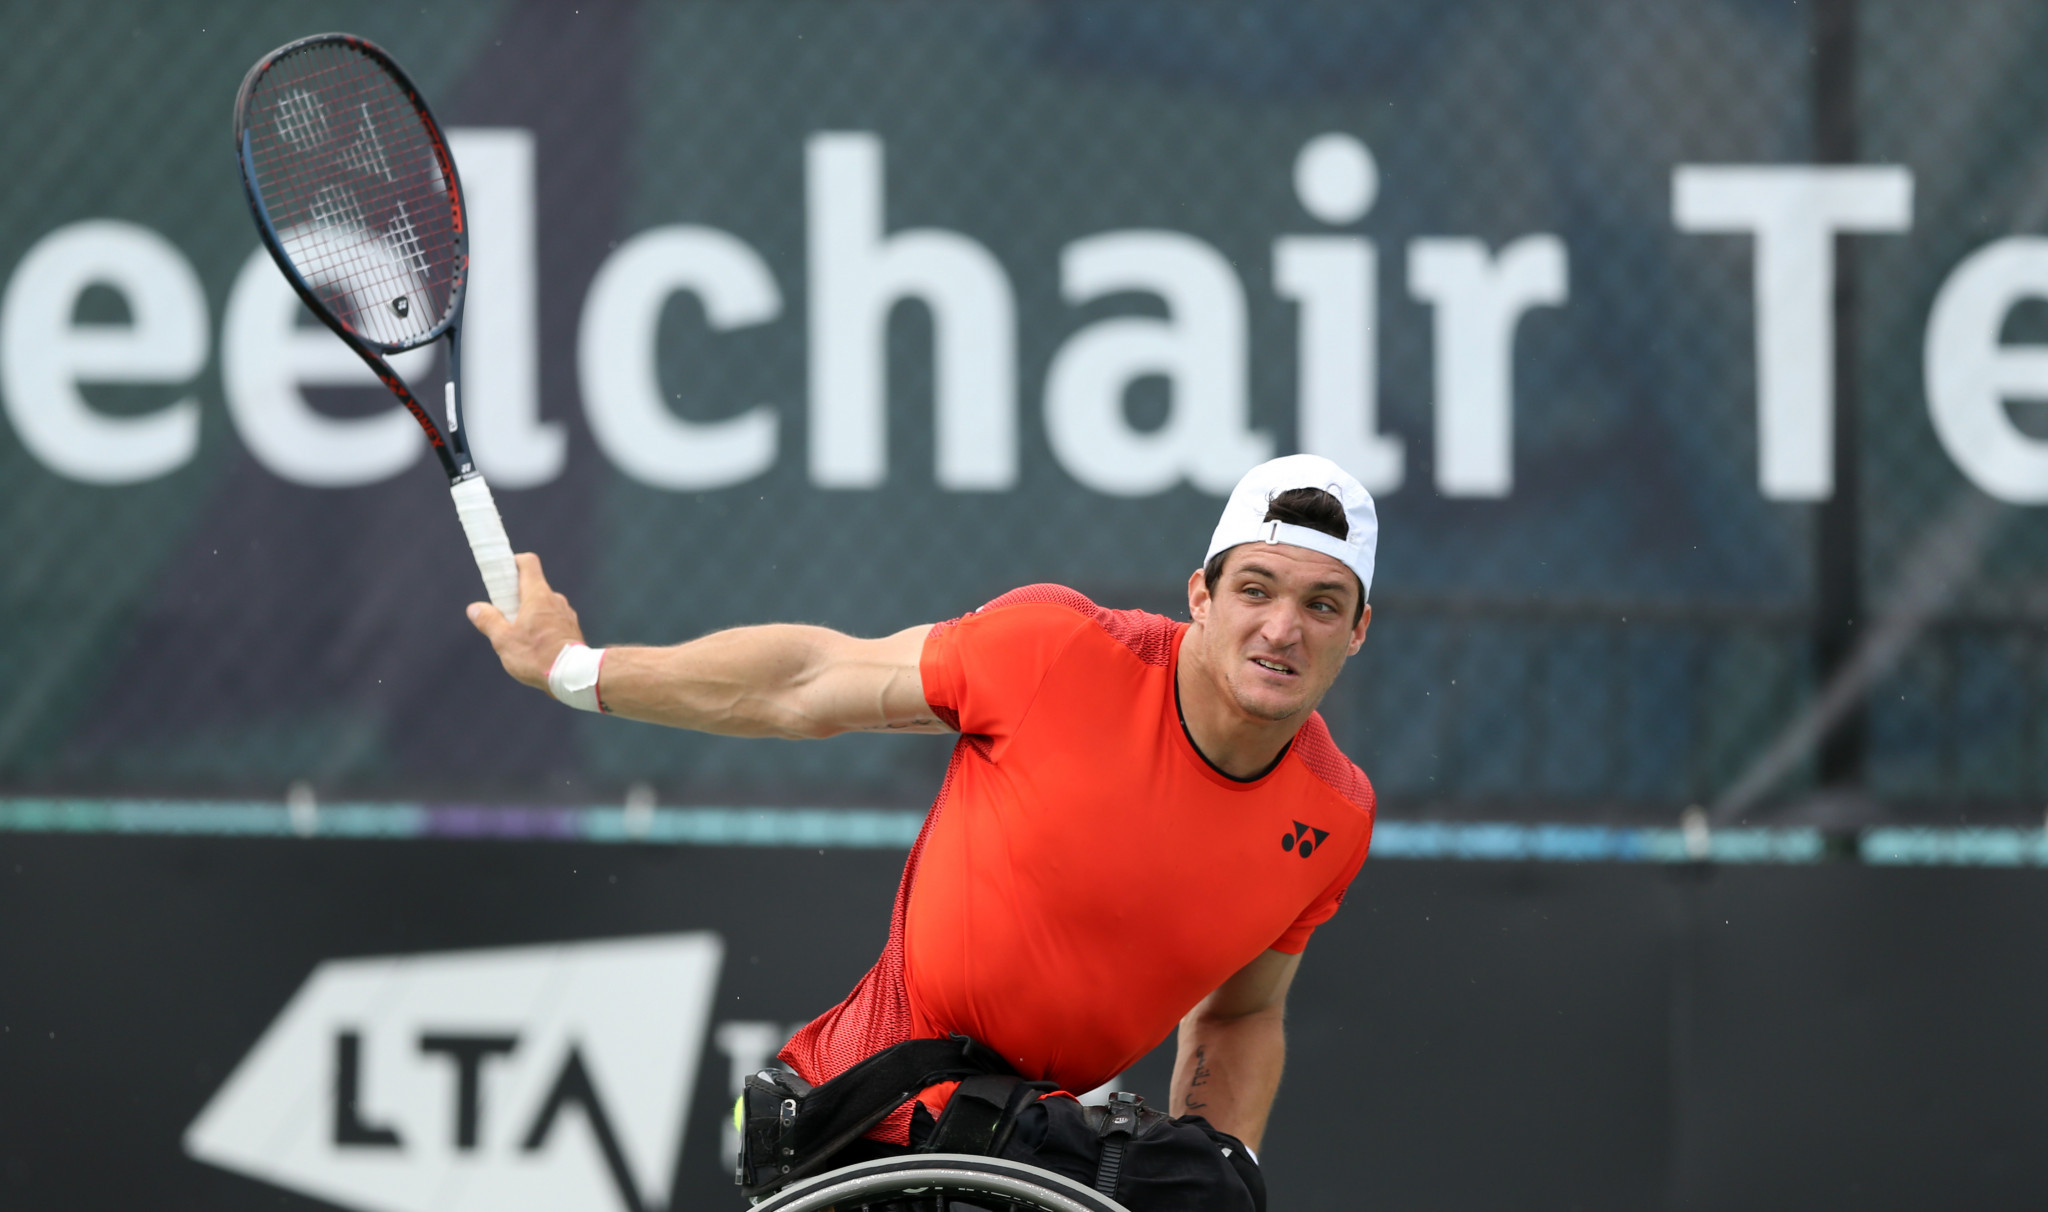 World's elite set to compete for glory at Wheelchair Tennis Masters